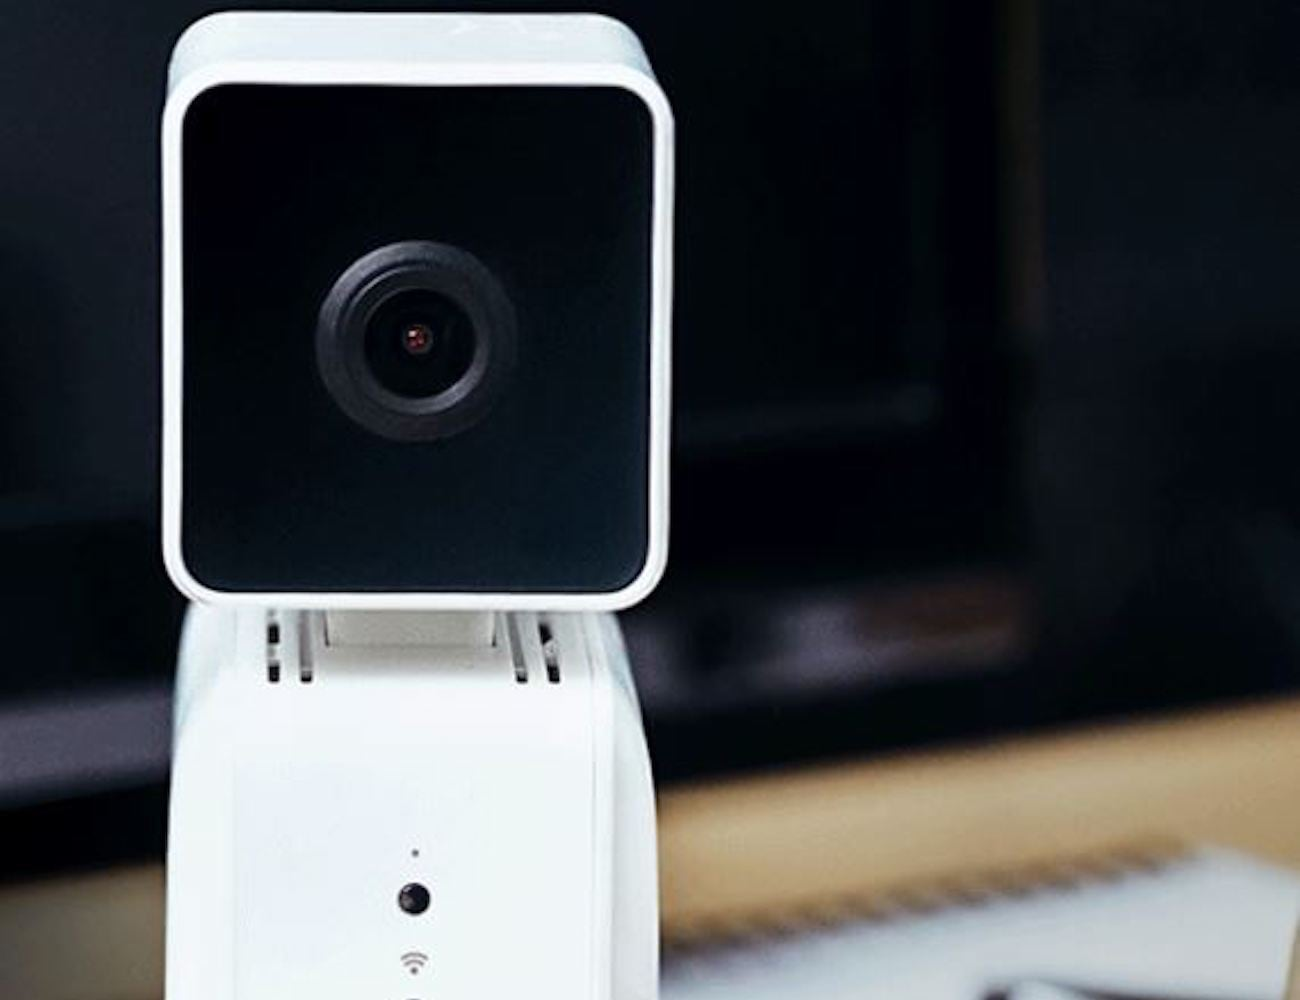 AWS DeepLens AI Deep Learning Video Camera